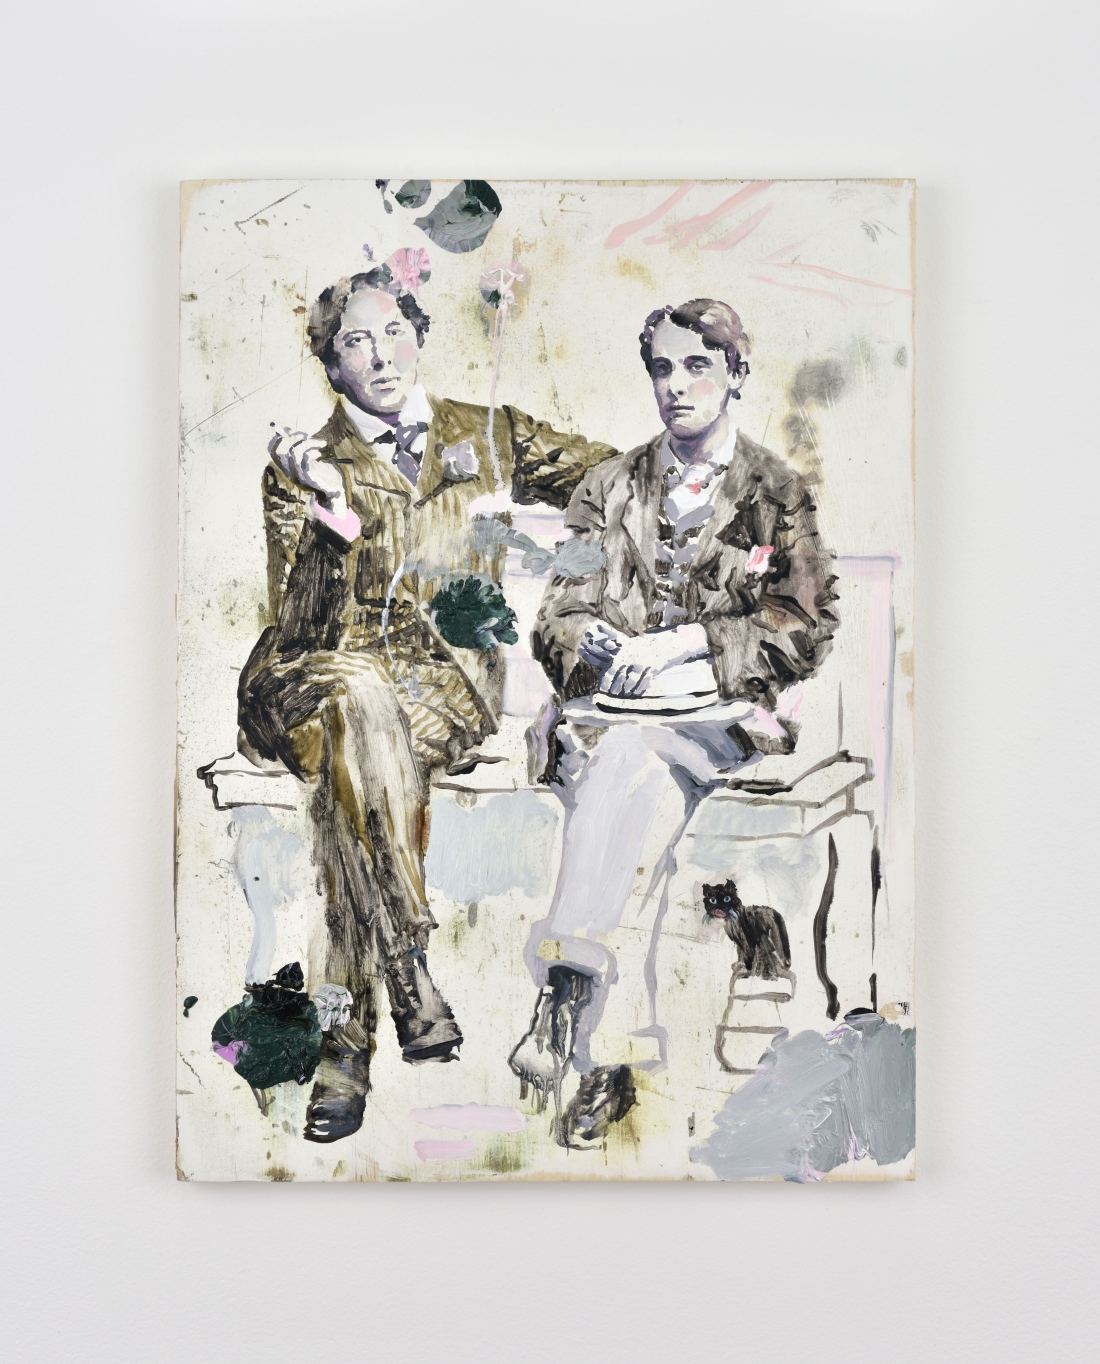 Ida TURSIC & Wilfried MILLE, Oscar Wilde & Lord Alfred Douglas, 2016 Oil on wood 15 3/4 x 11 3/4 inches 40 x 30 cm